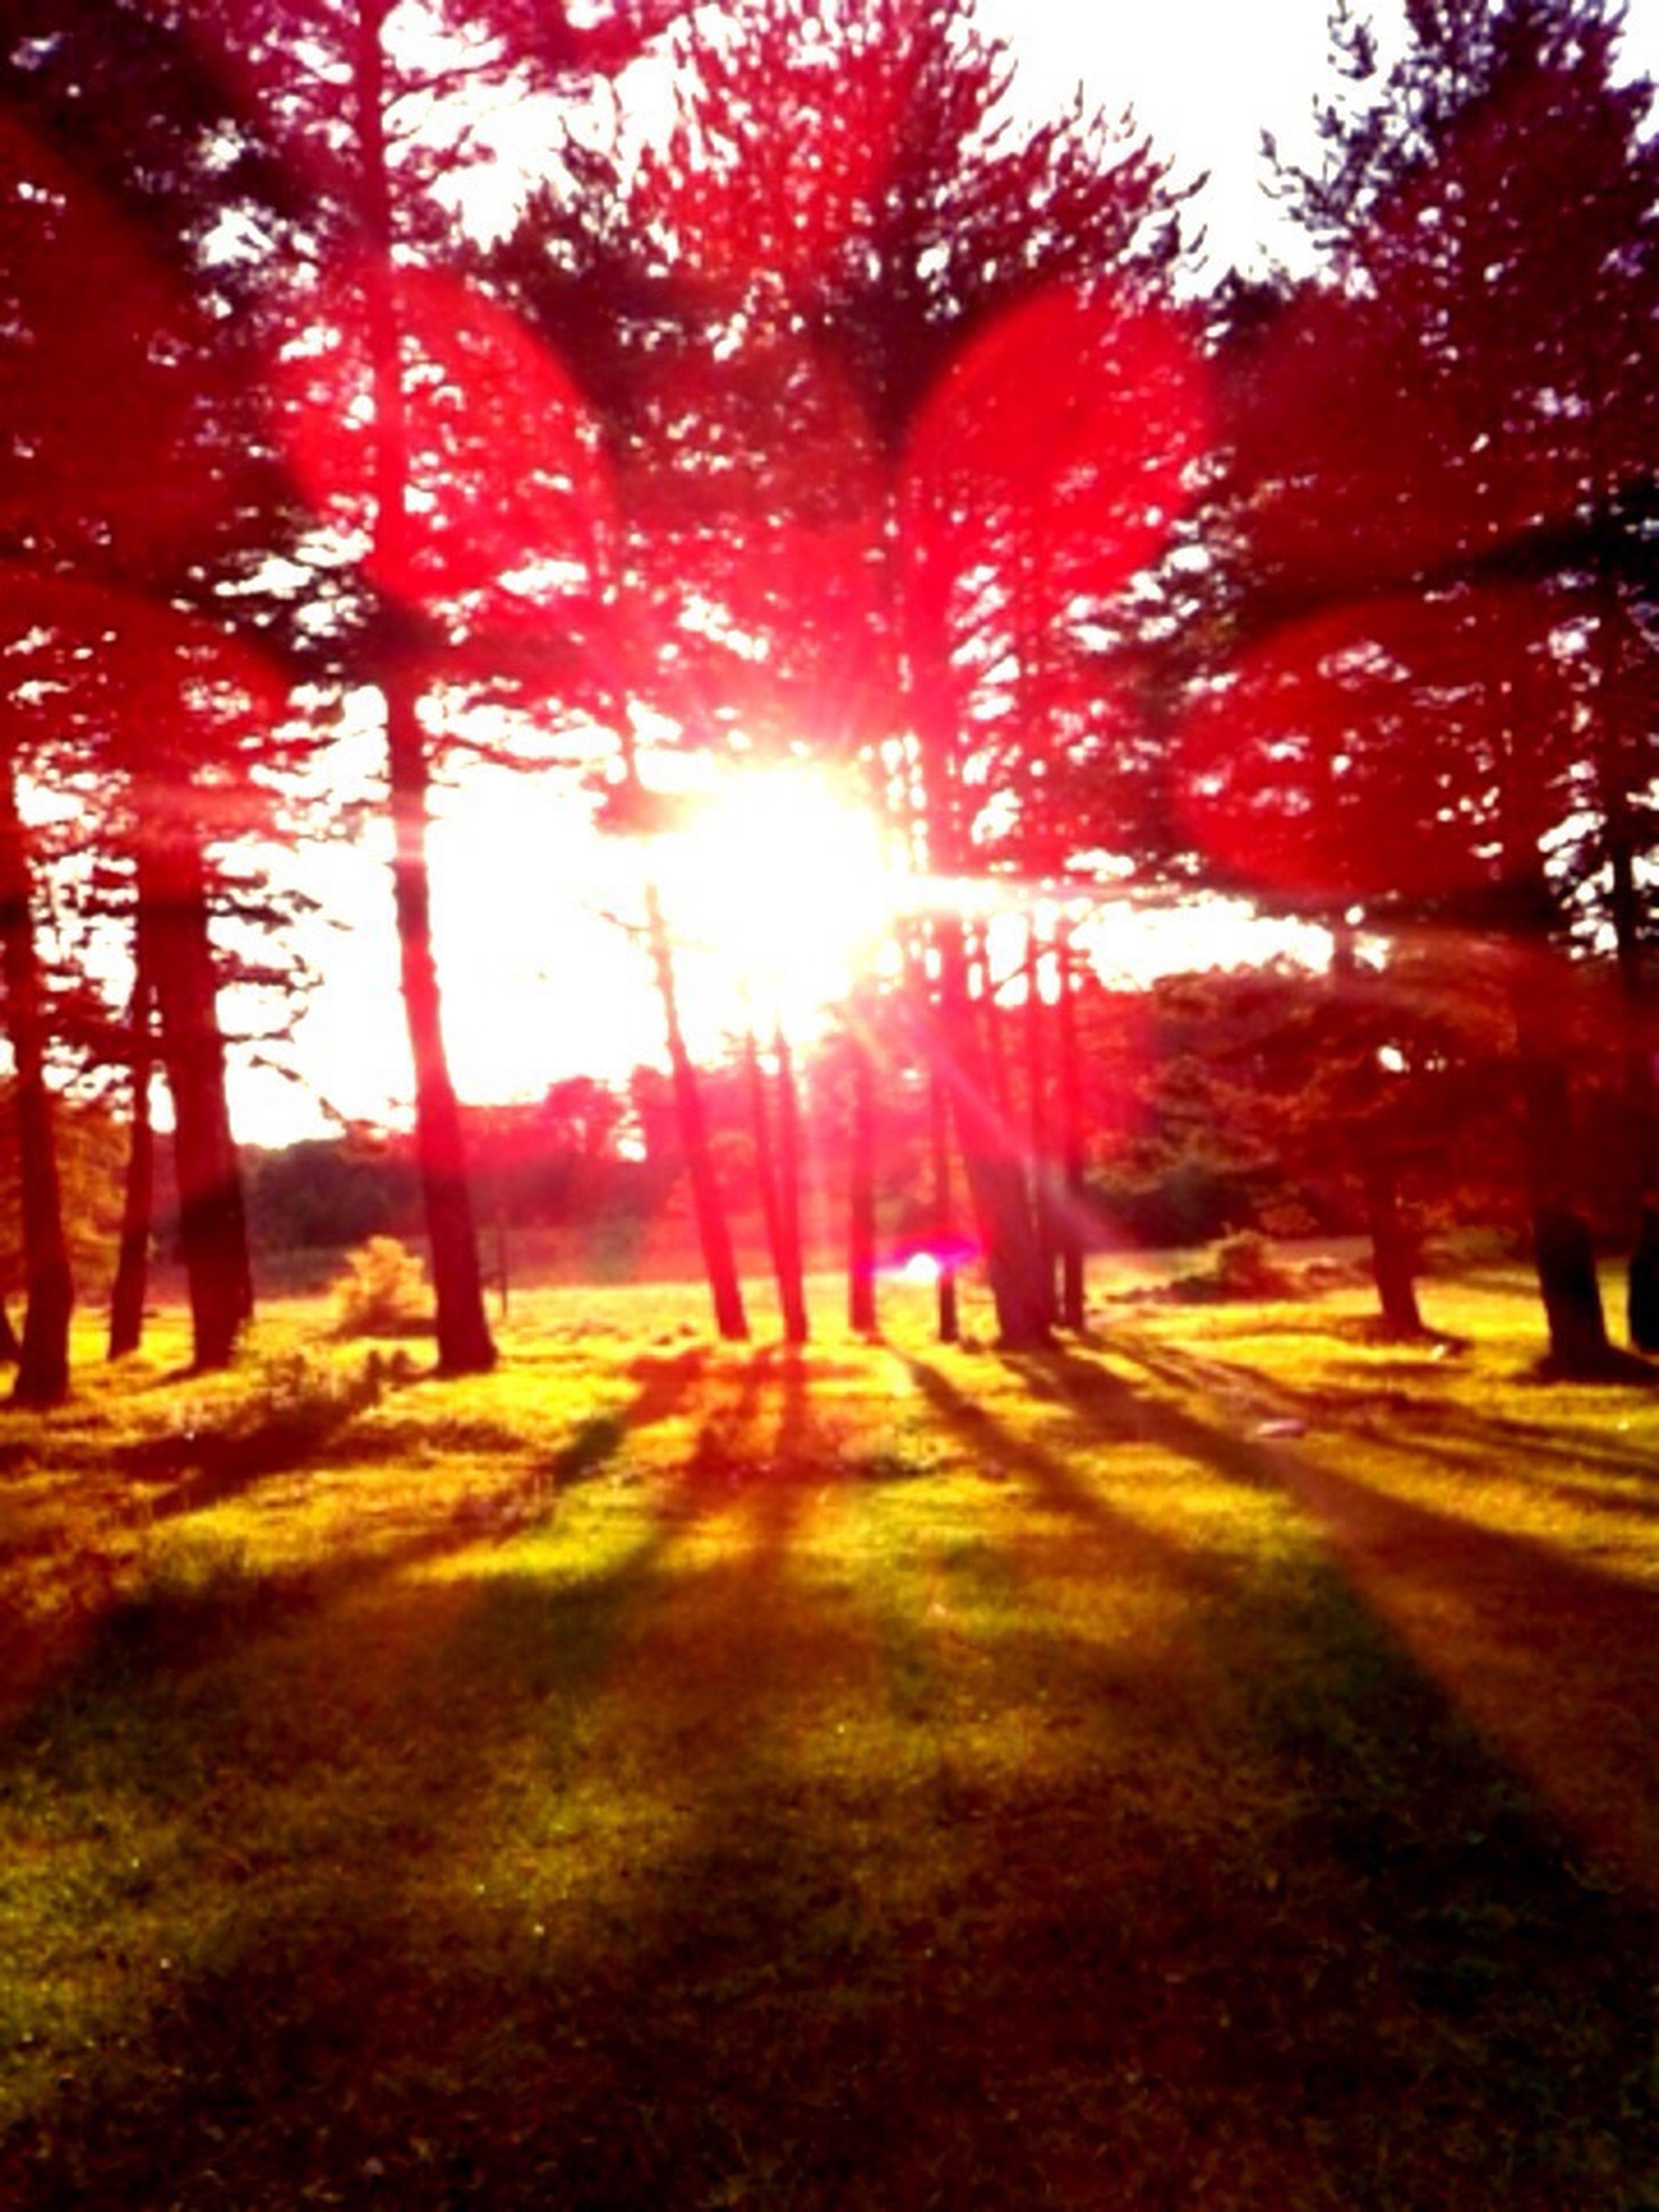 tree, sun, sunlight, sunbeam, tranquility, tranquil scene, lens flare, tree trunk, nature, sunset, beauty in nature, scenics, growth, park - man made space, orange color, shadow, outdoors, branch, landscape, autumn